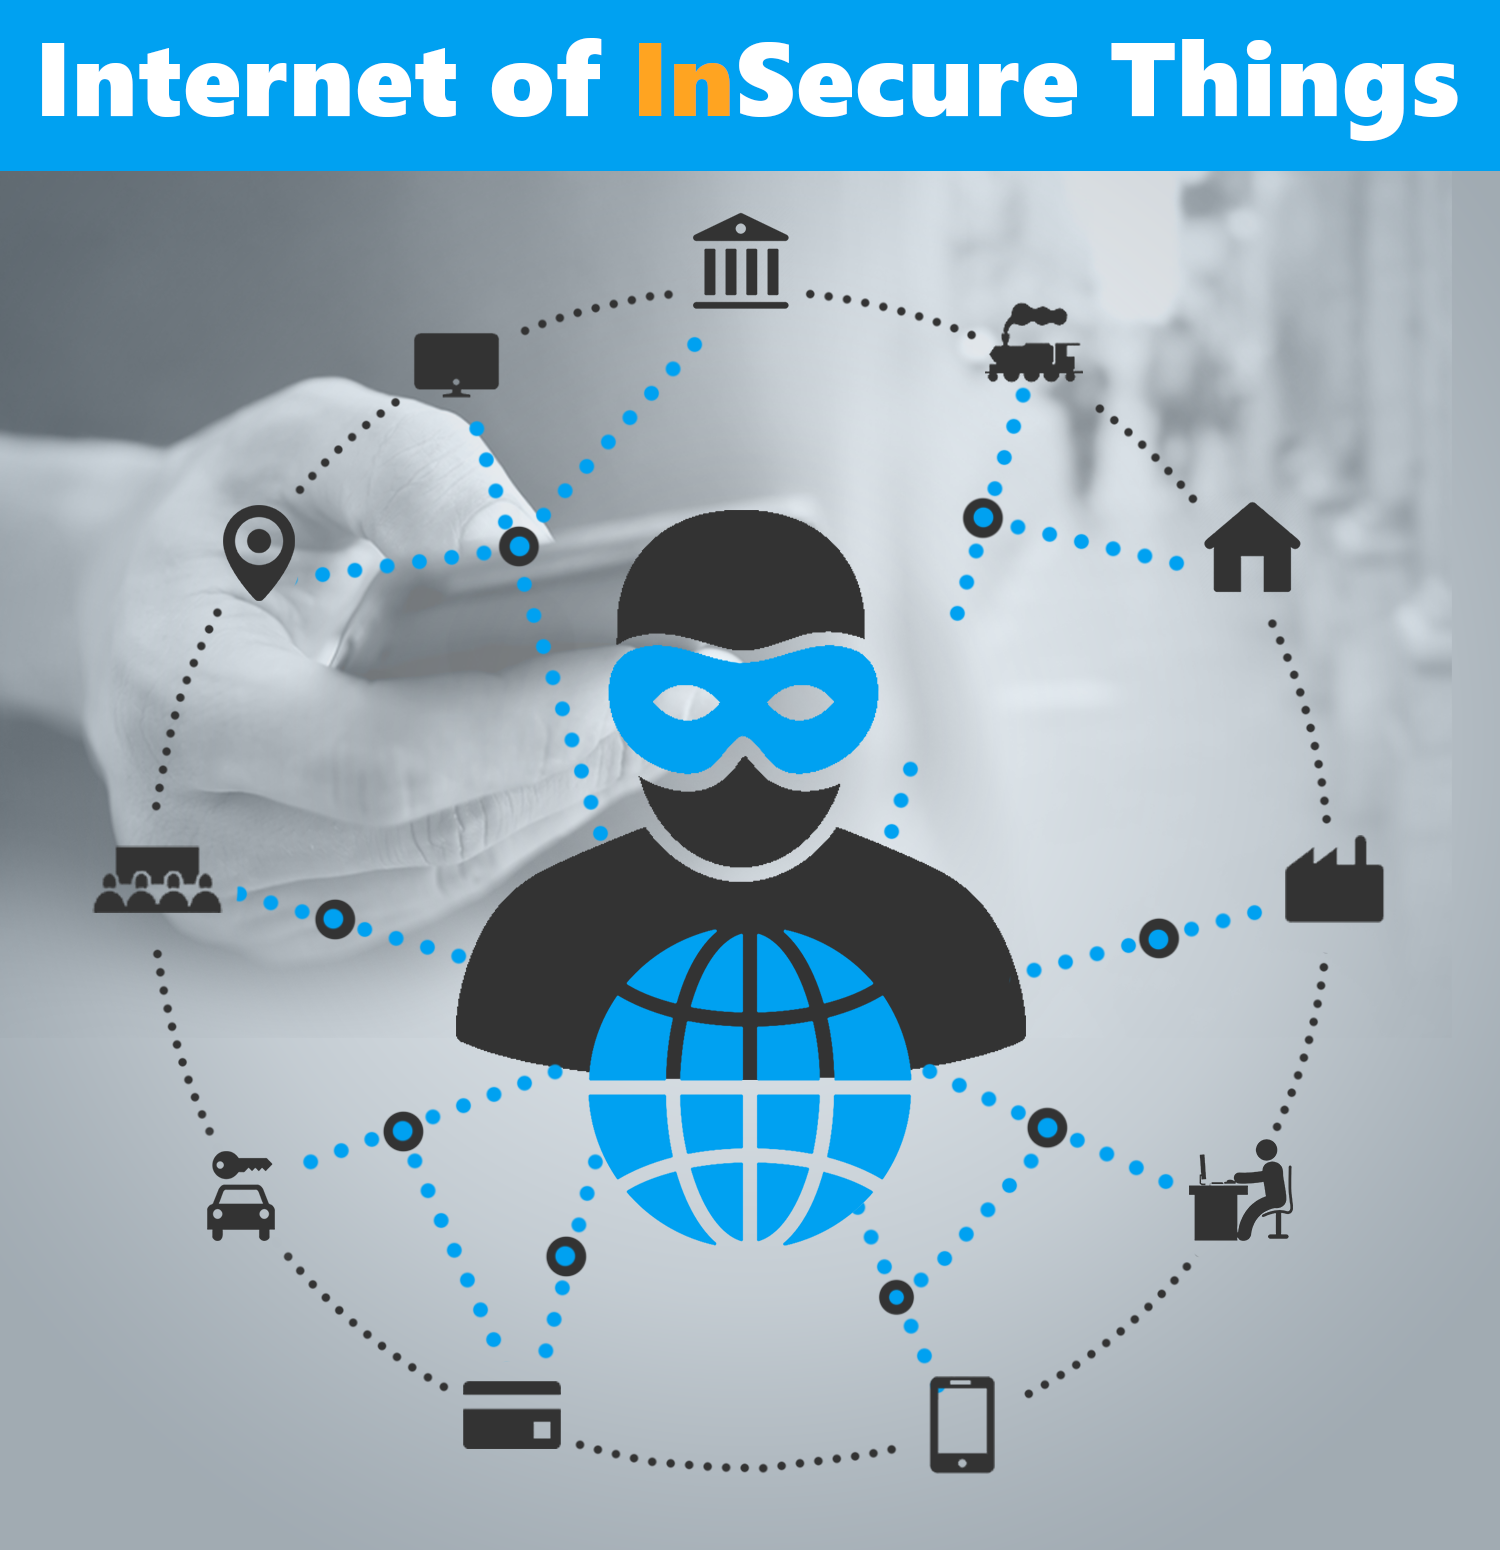 internet of insecure things